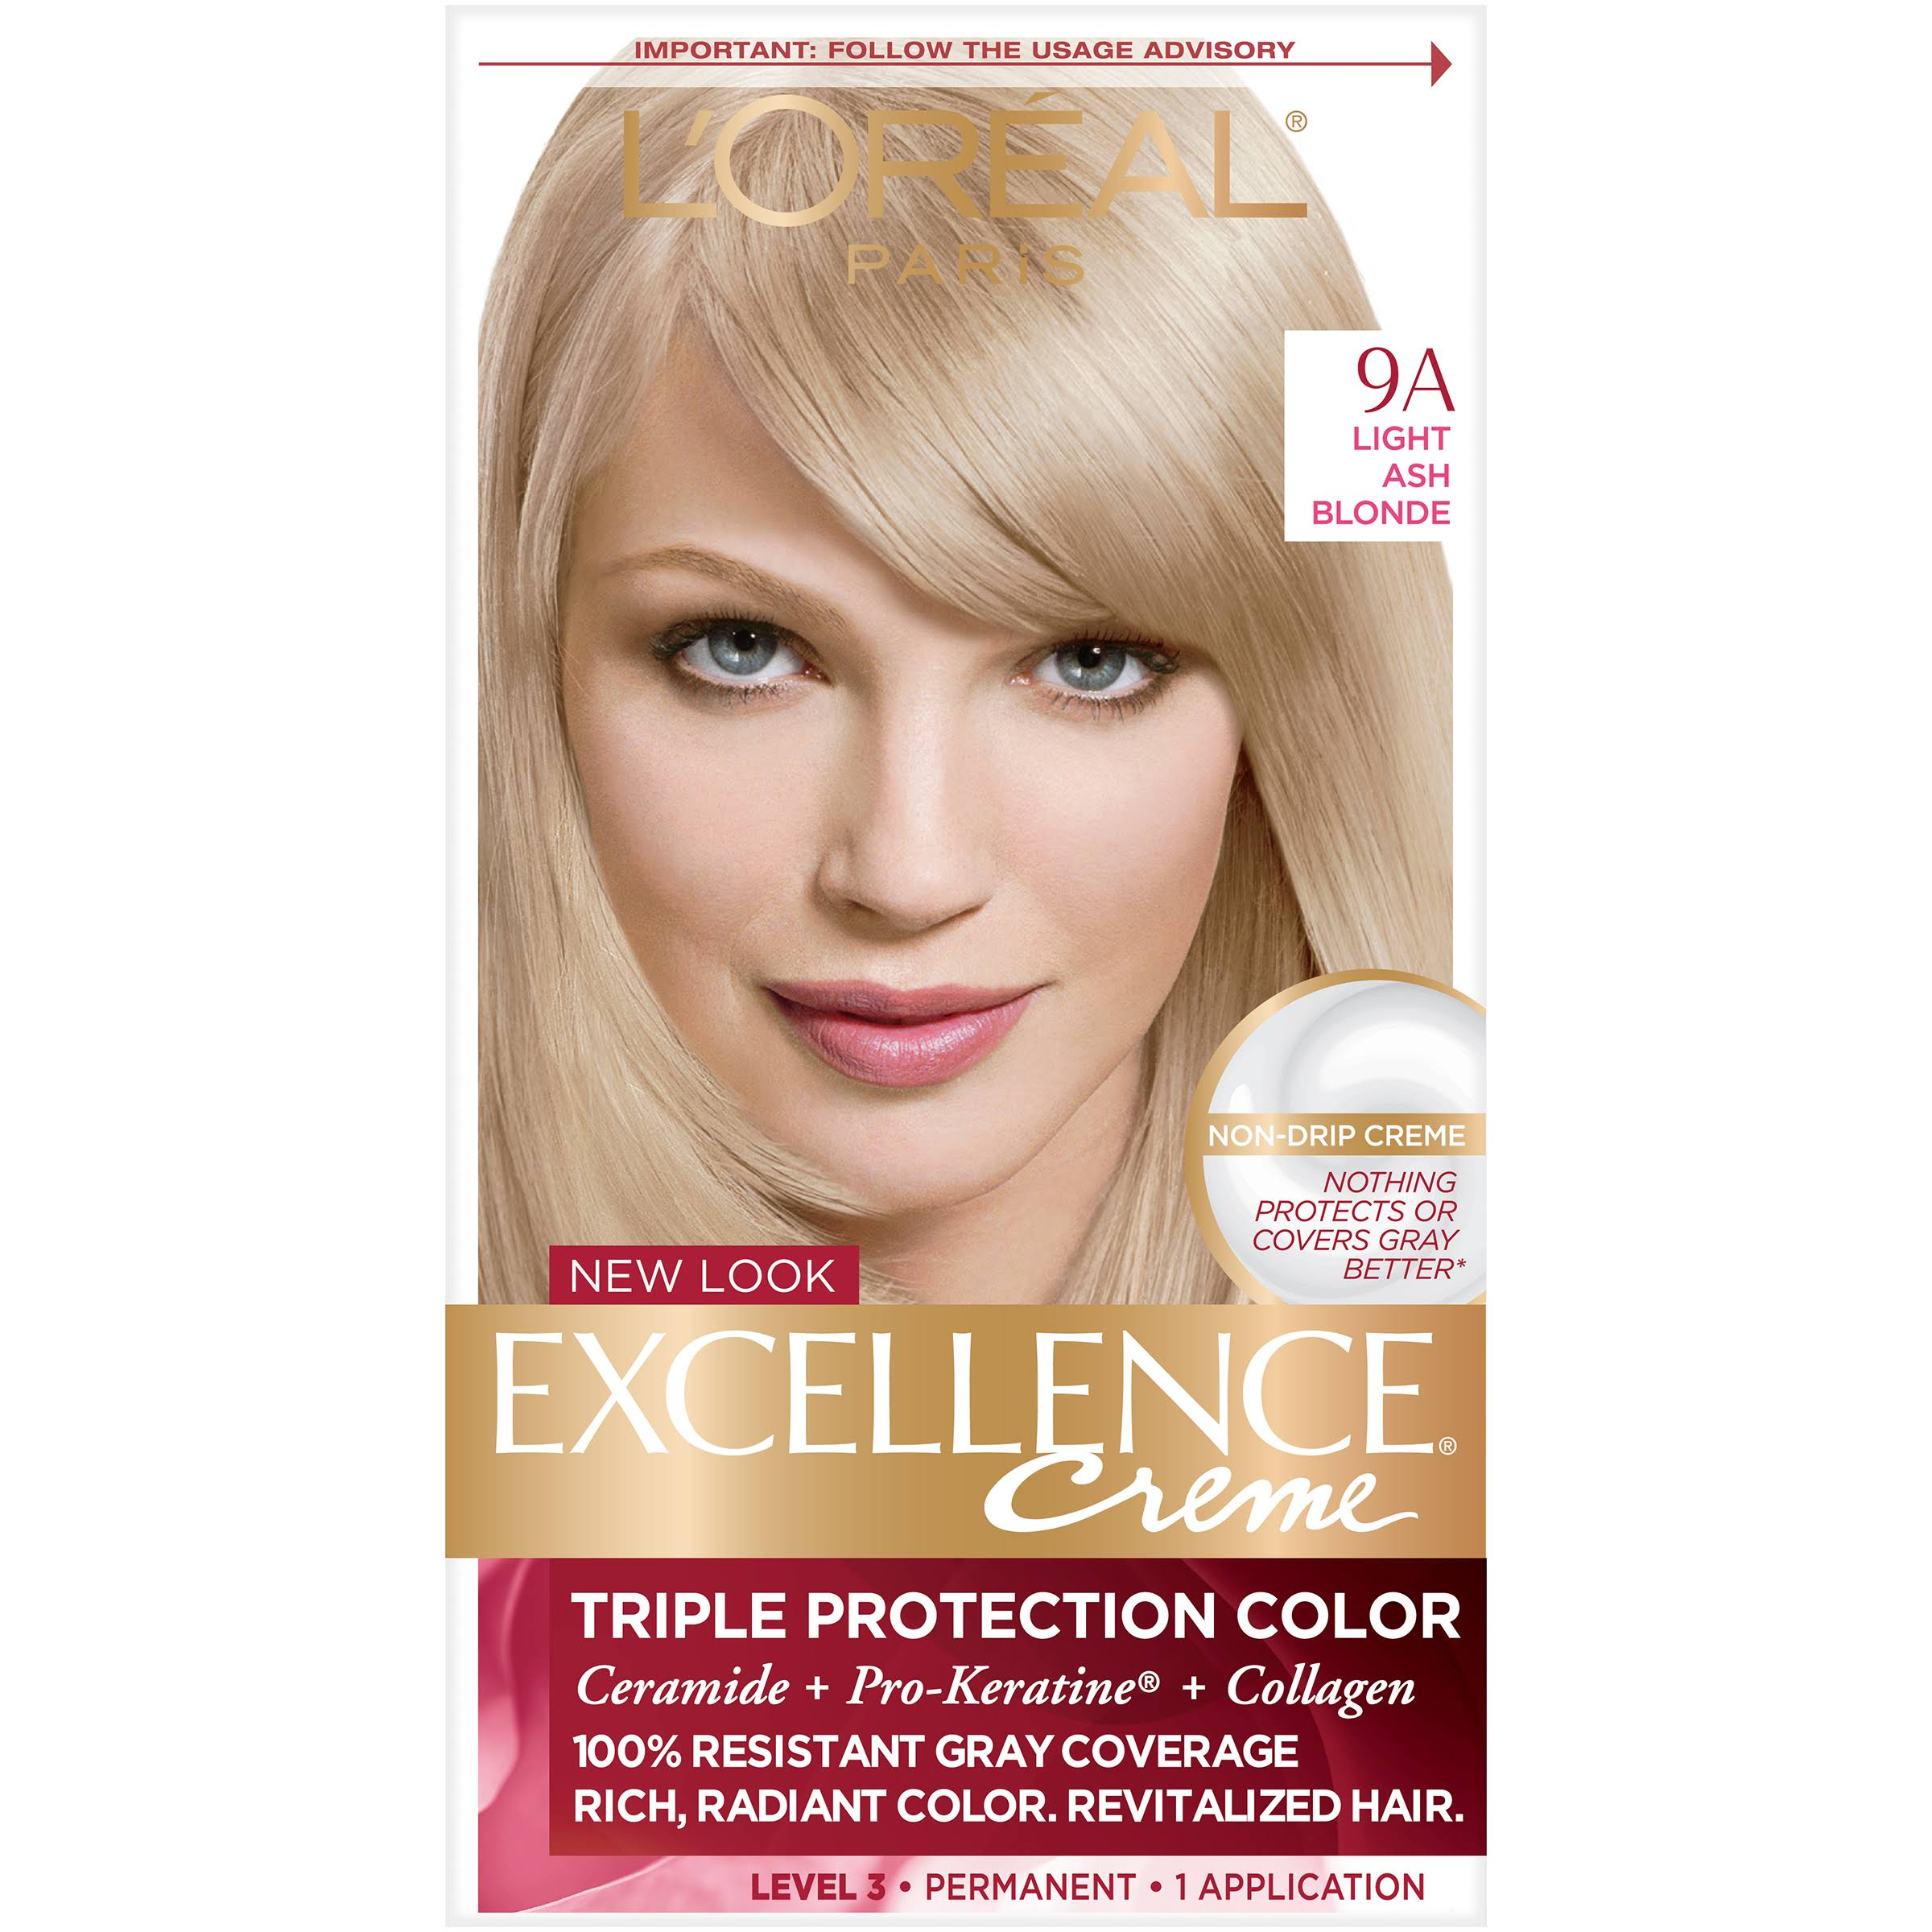 L'Oréal Paris Excellence Creme Permanent Hair Color - 9A Light Ash Blonde